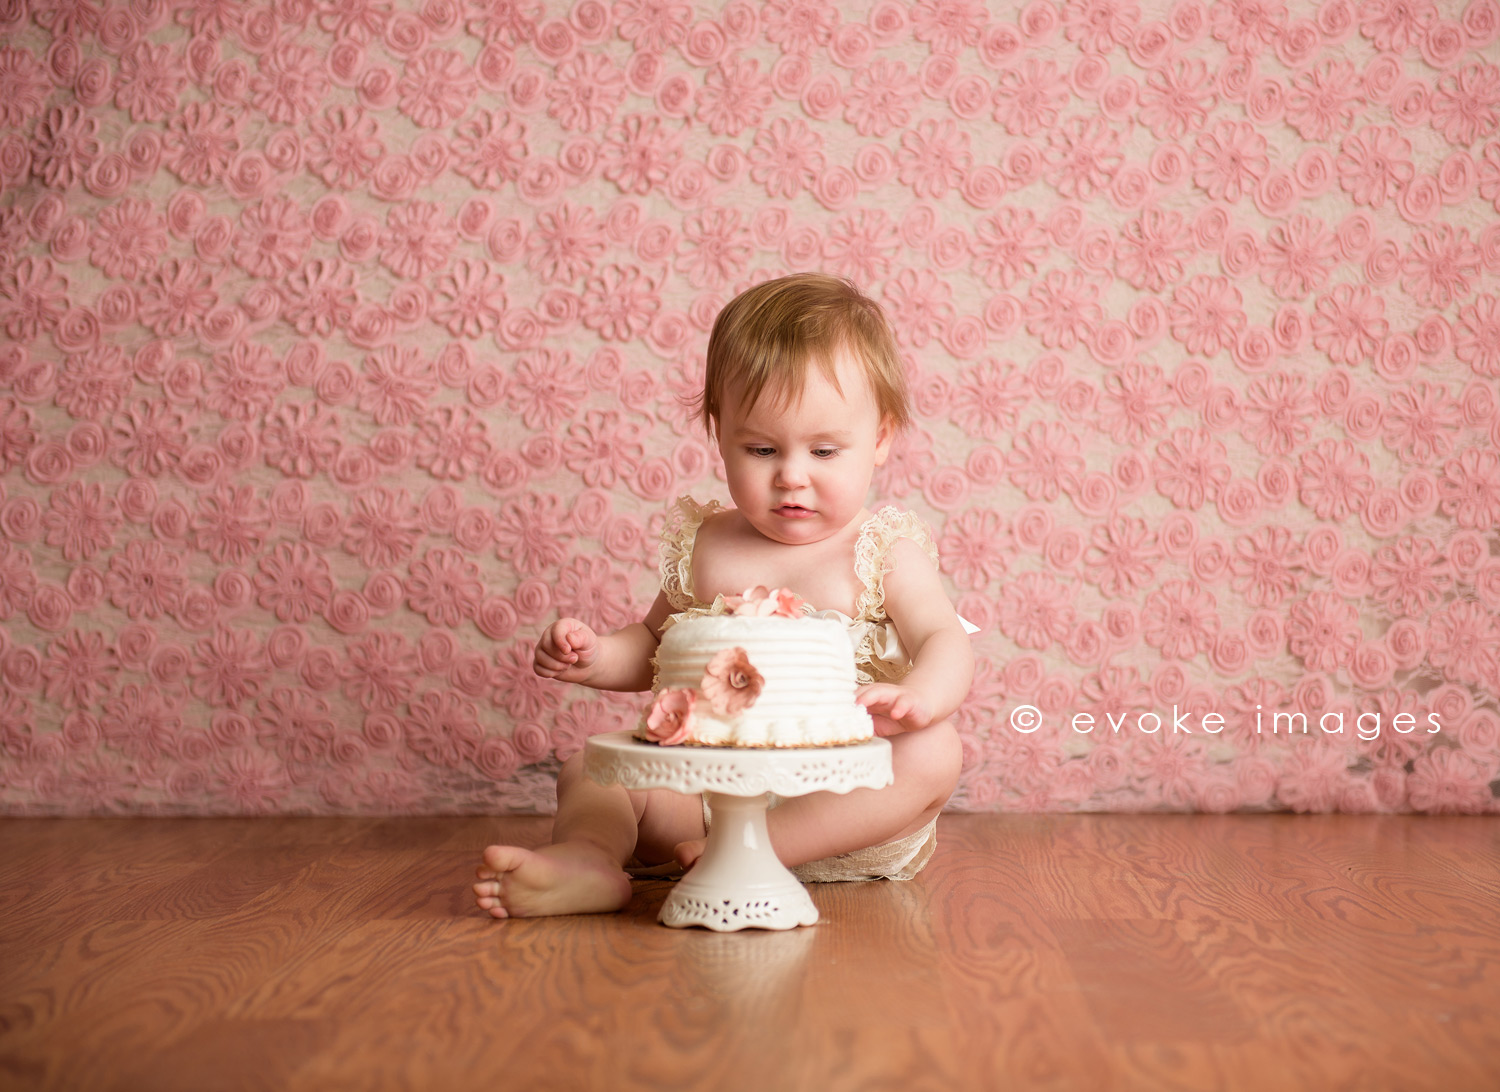 anchorage Alaska studio photography cake smash little girl pink